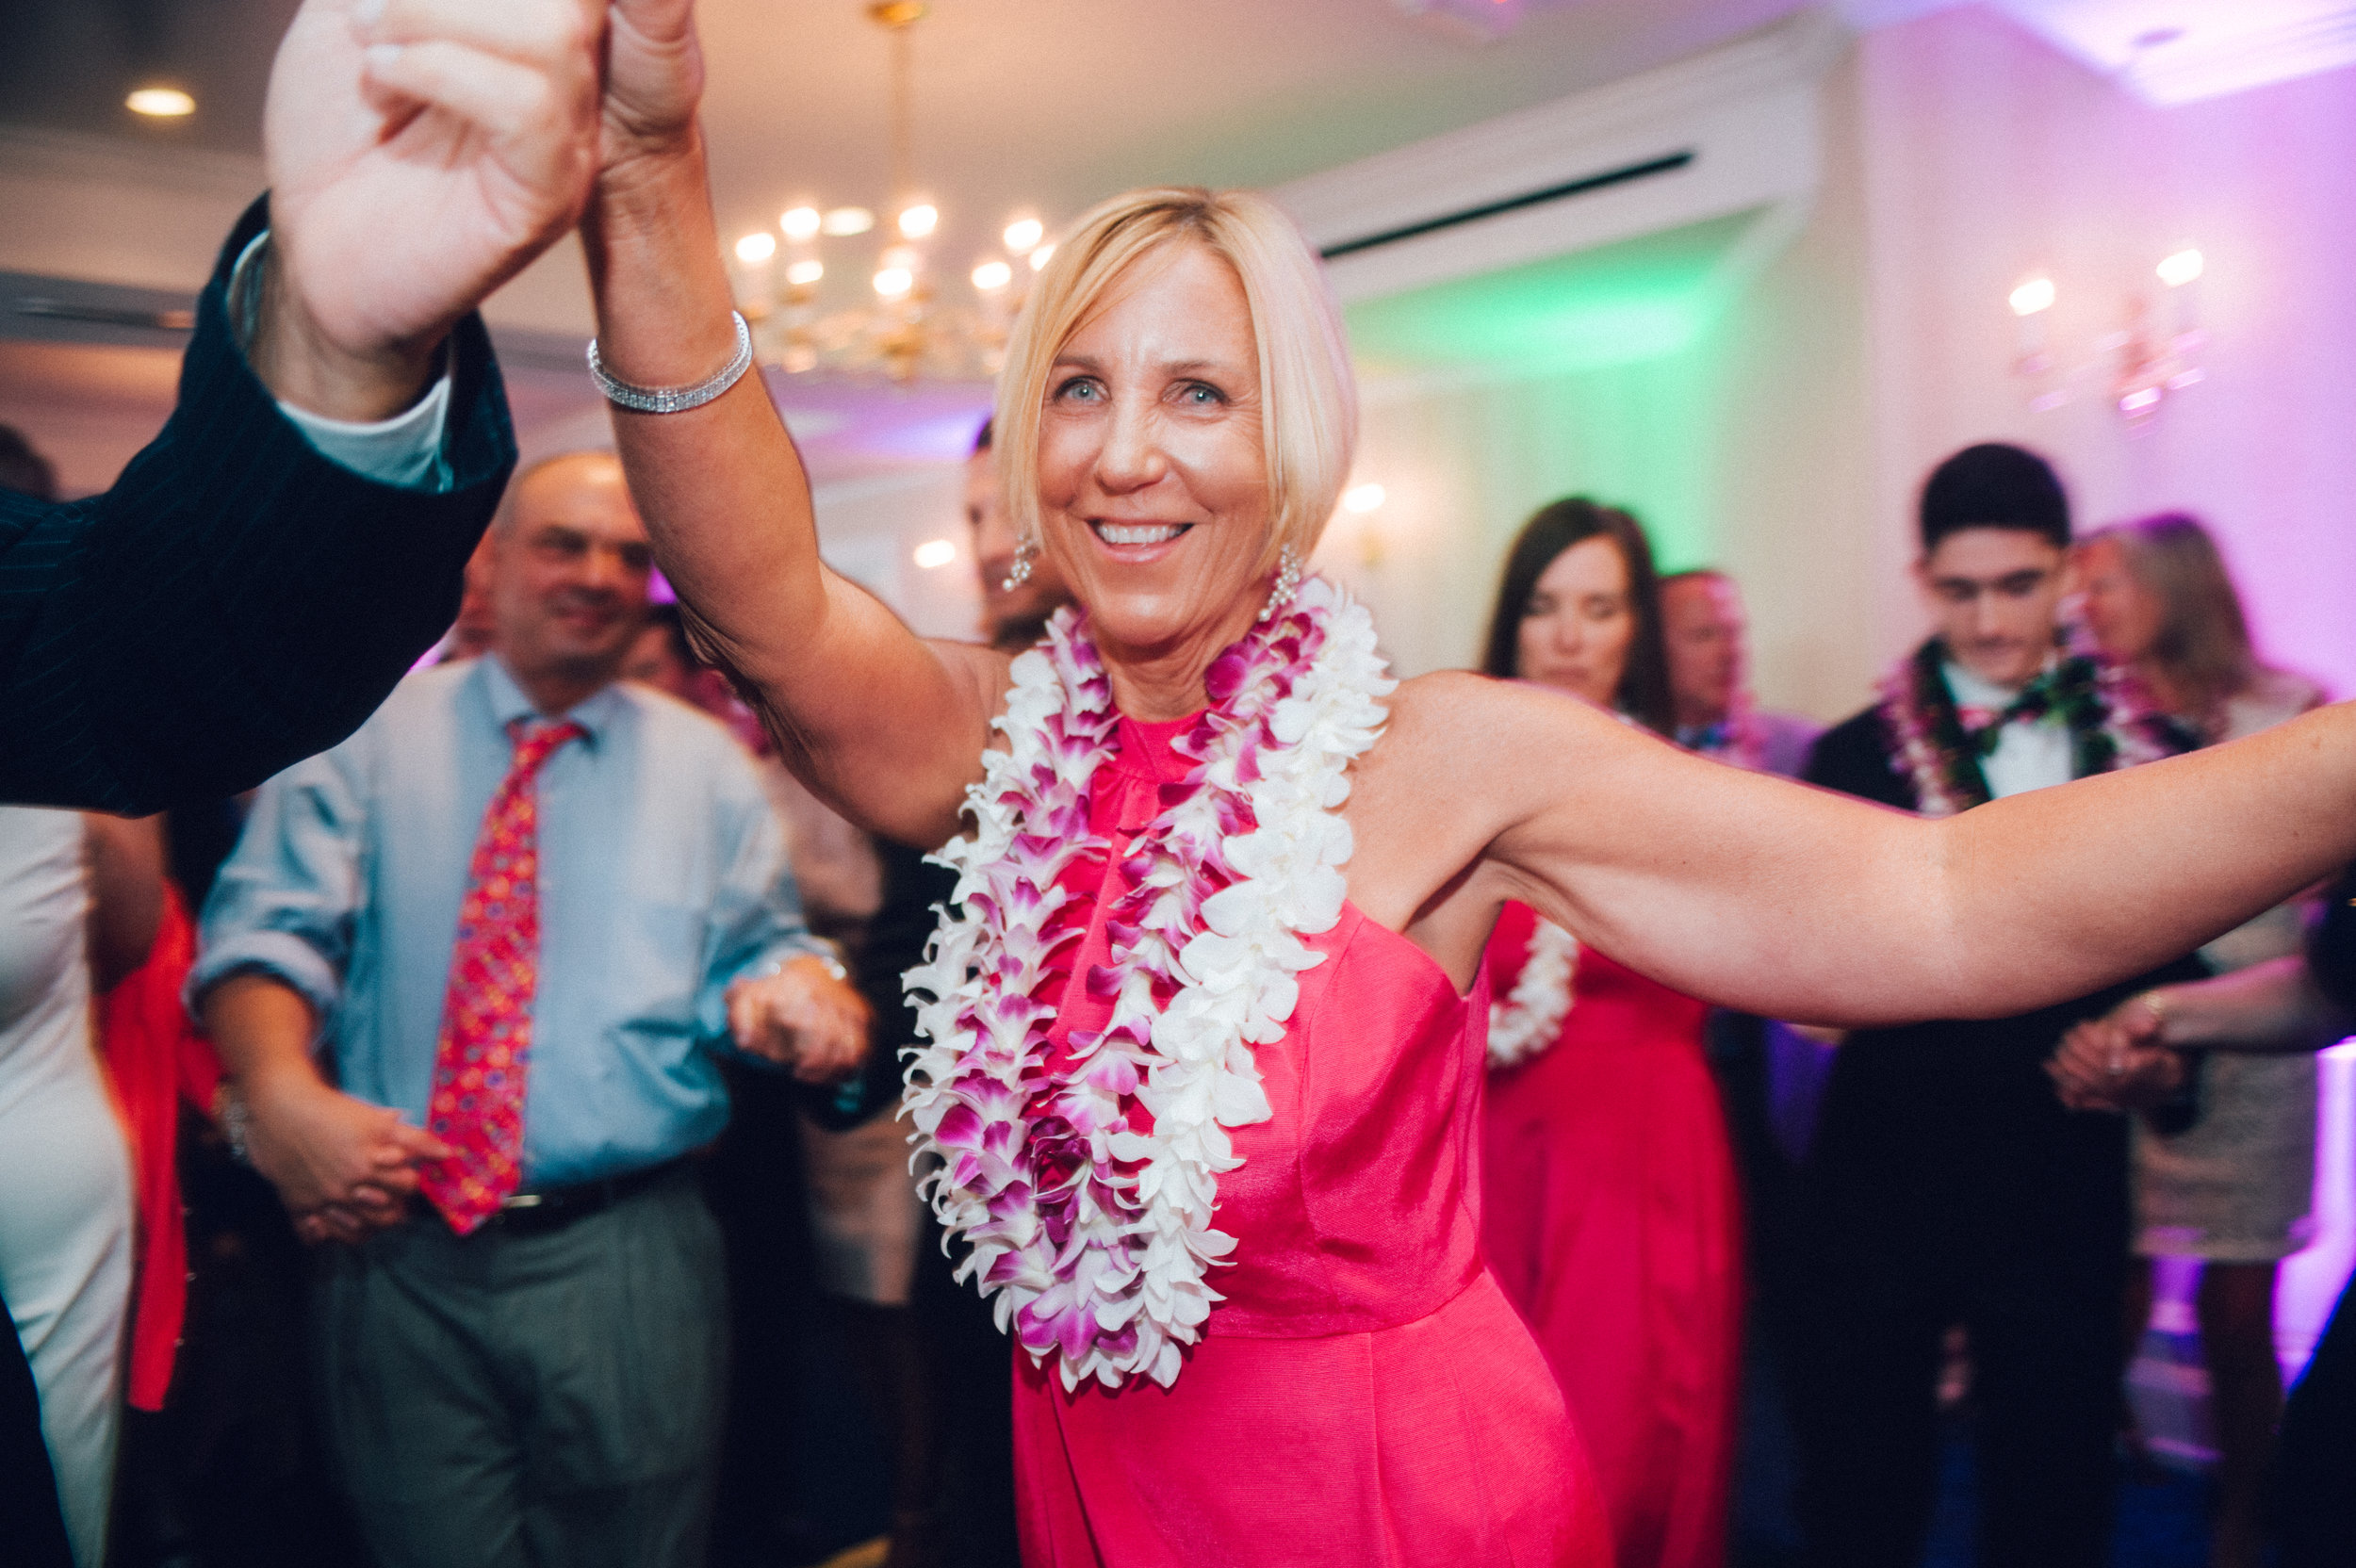 Mother of the bride dances at the wedding with orchid leis around her neck